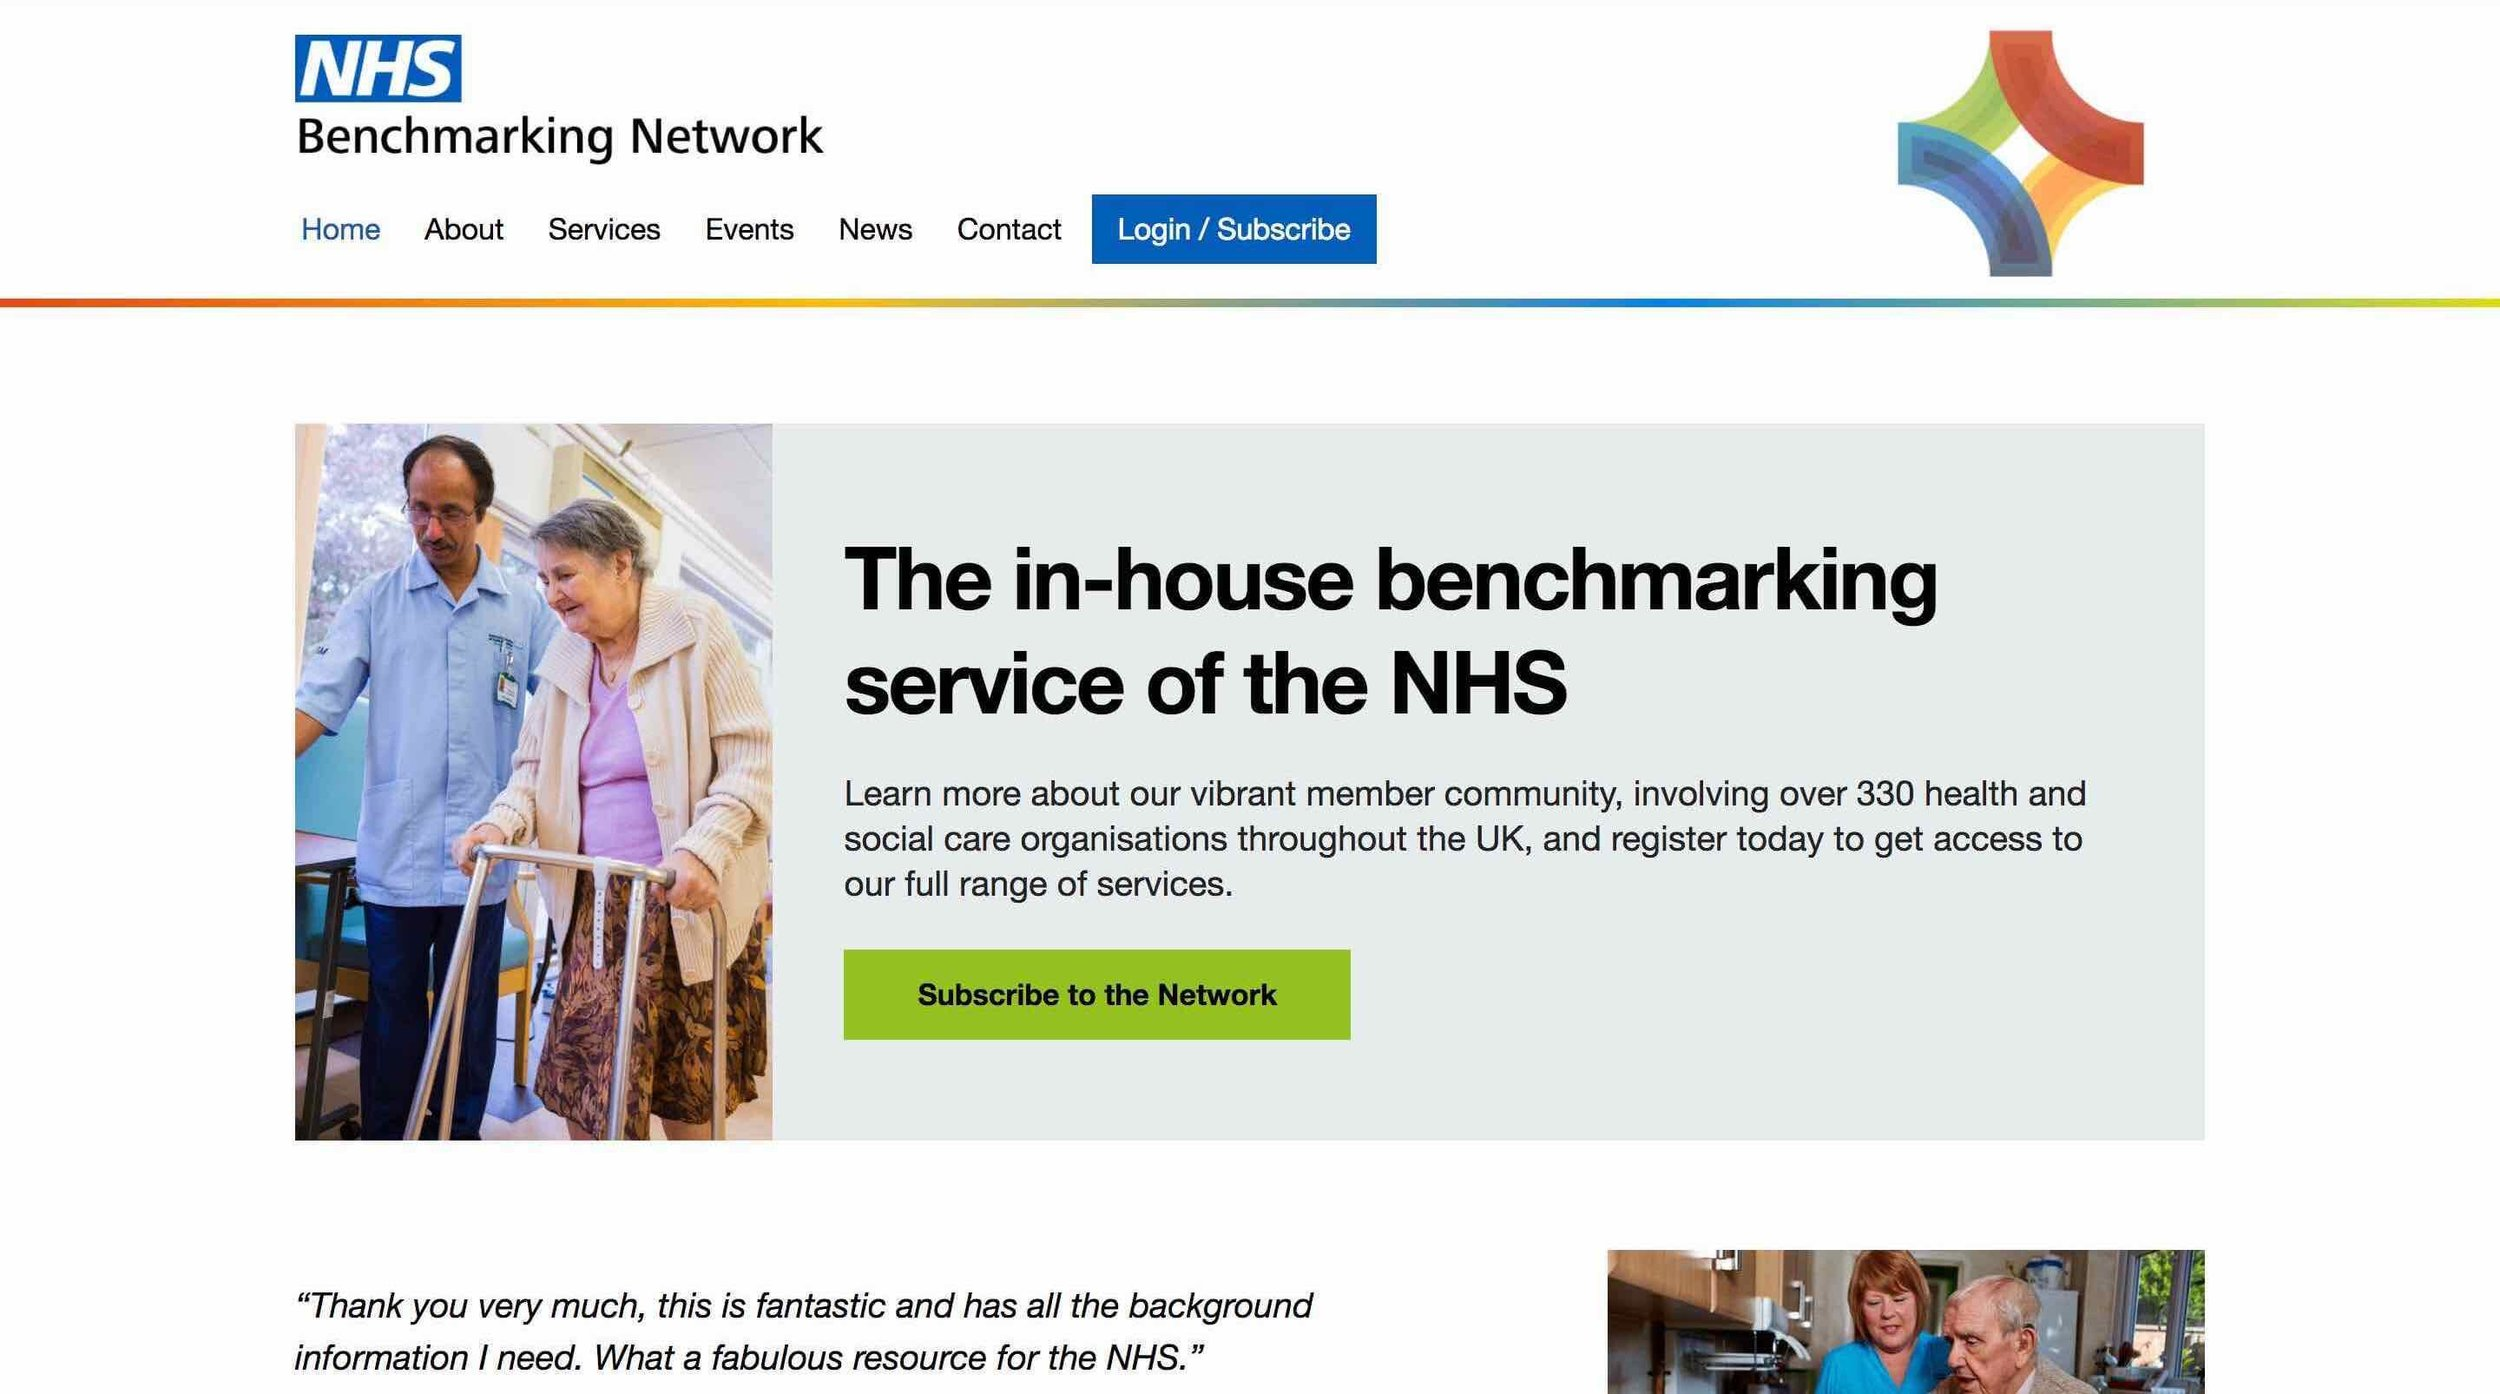 NHS Benchmarking Network: Home Page